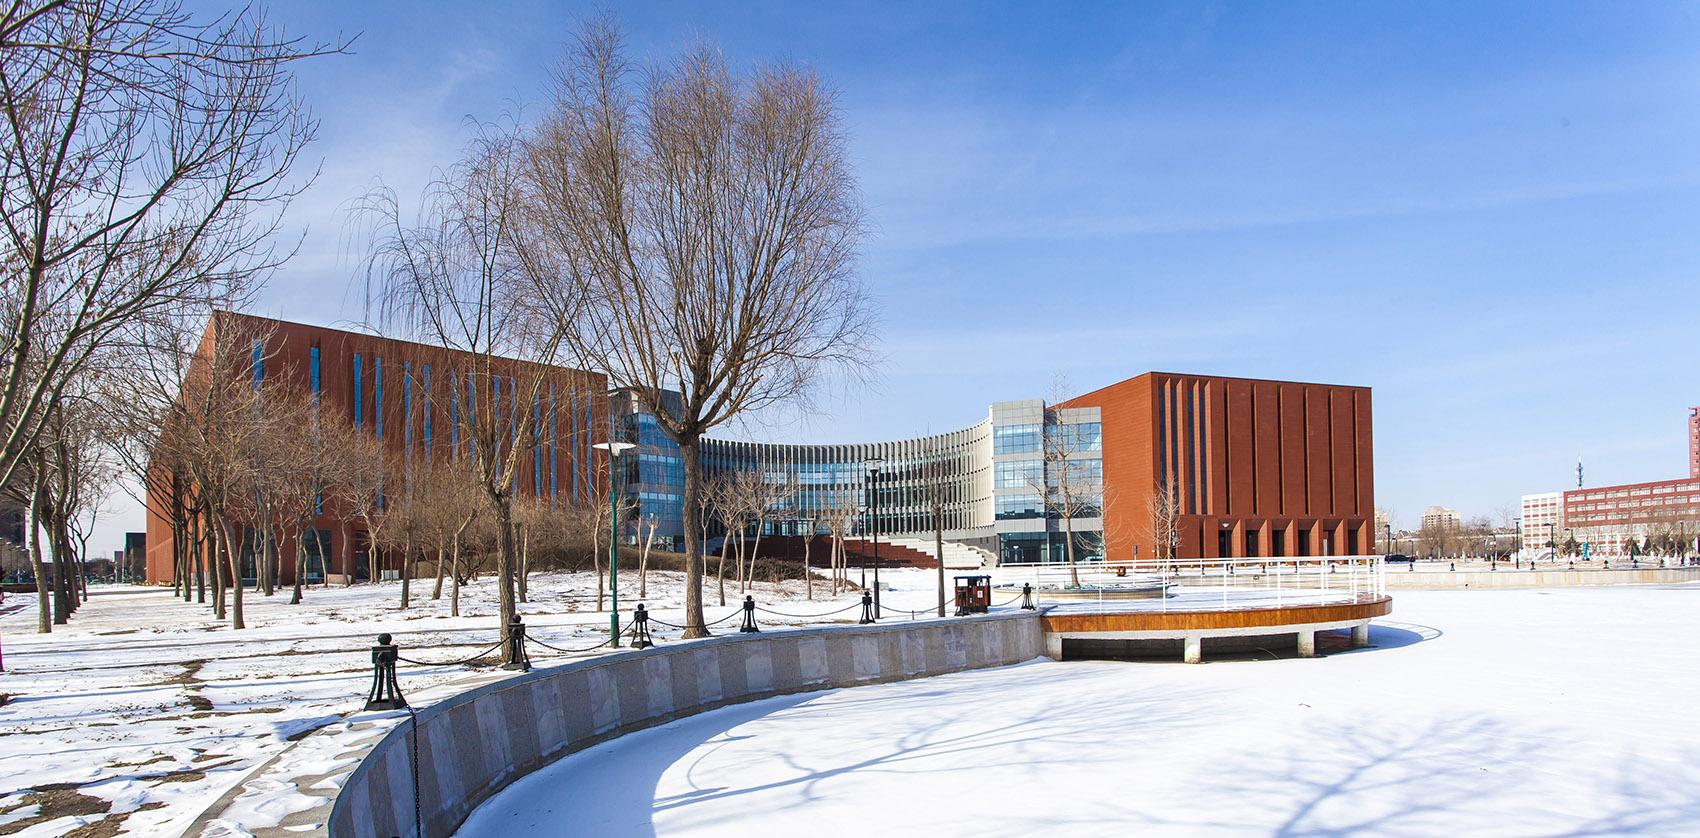 Tianjin-University-of-science-and-technology-background